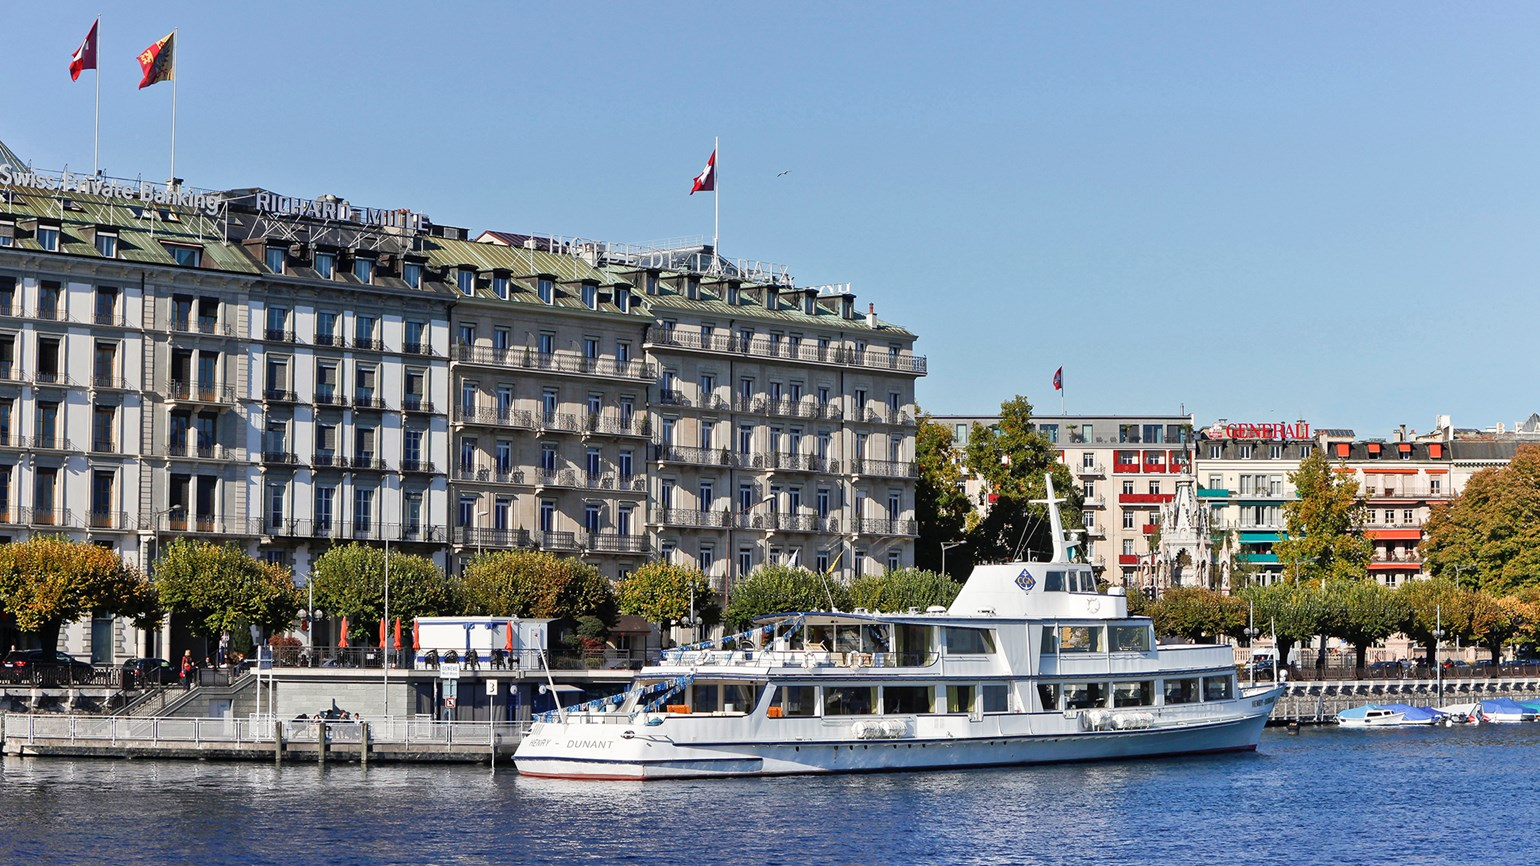 Ritz-Carlton brands classic Switzerland hotel